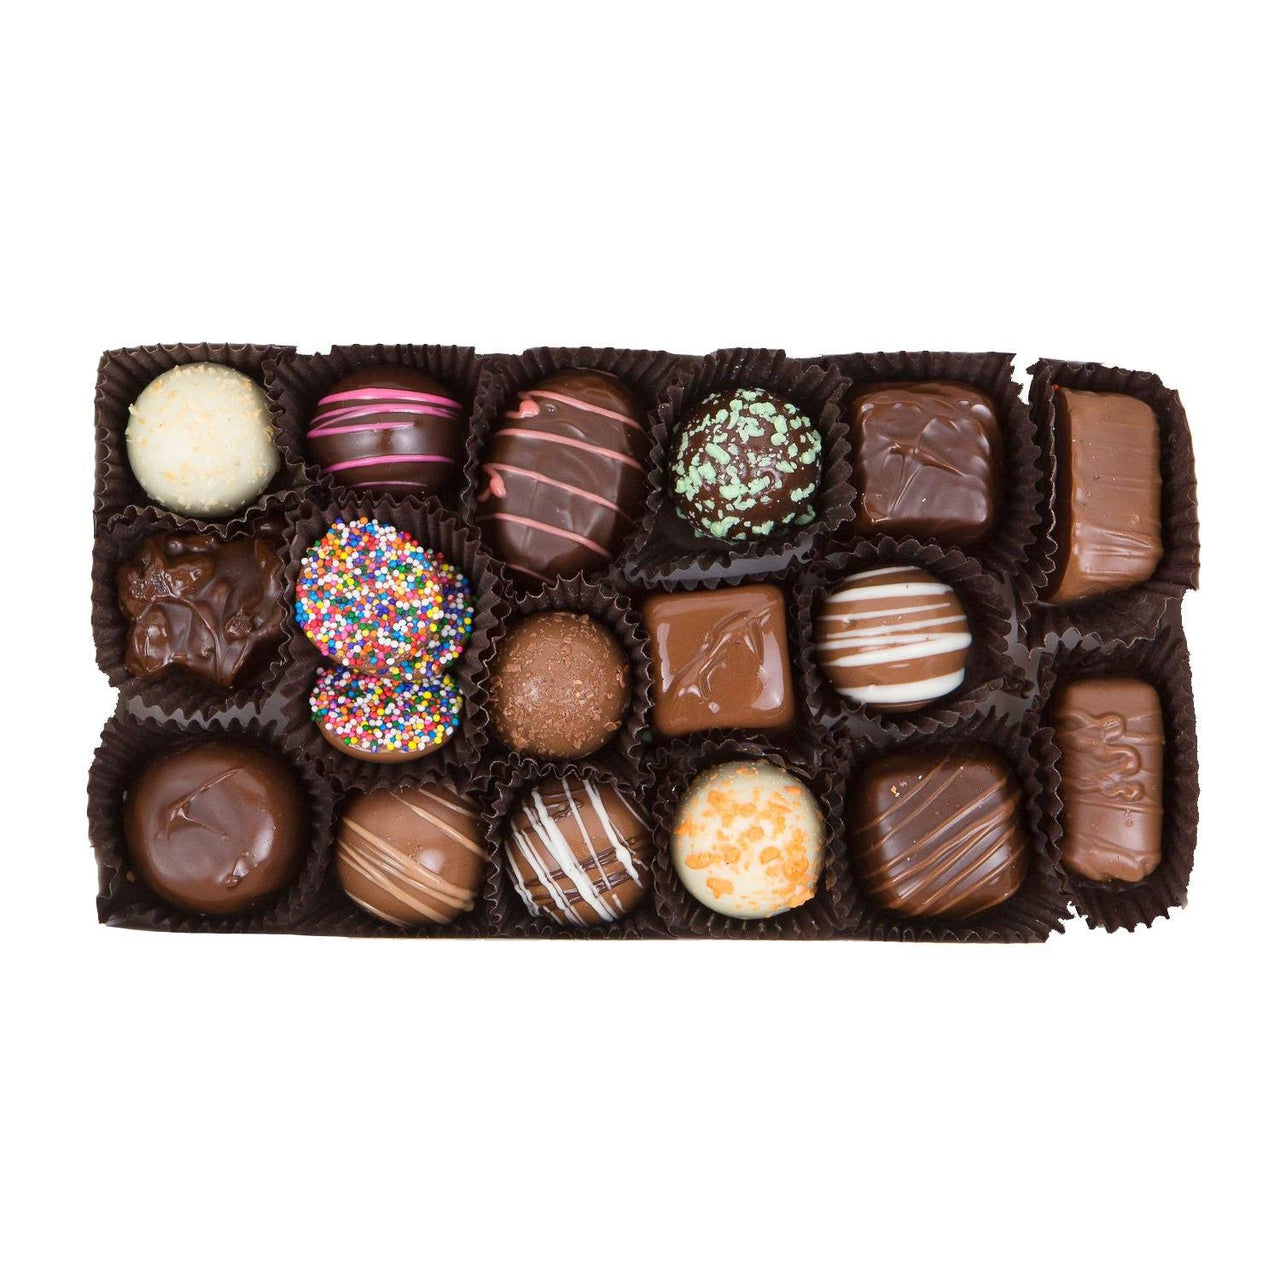 Gifts for Students - Assorted Chocolate Gift Box - Jackie's Chocolate (1487129051171)